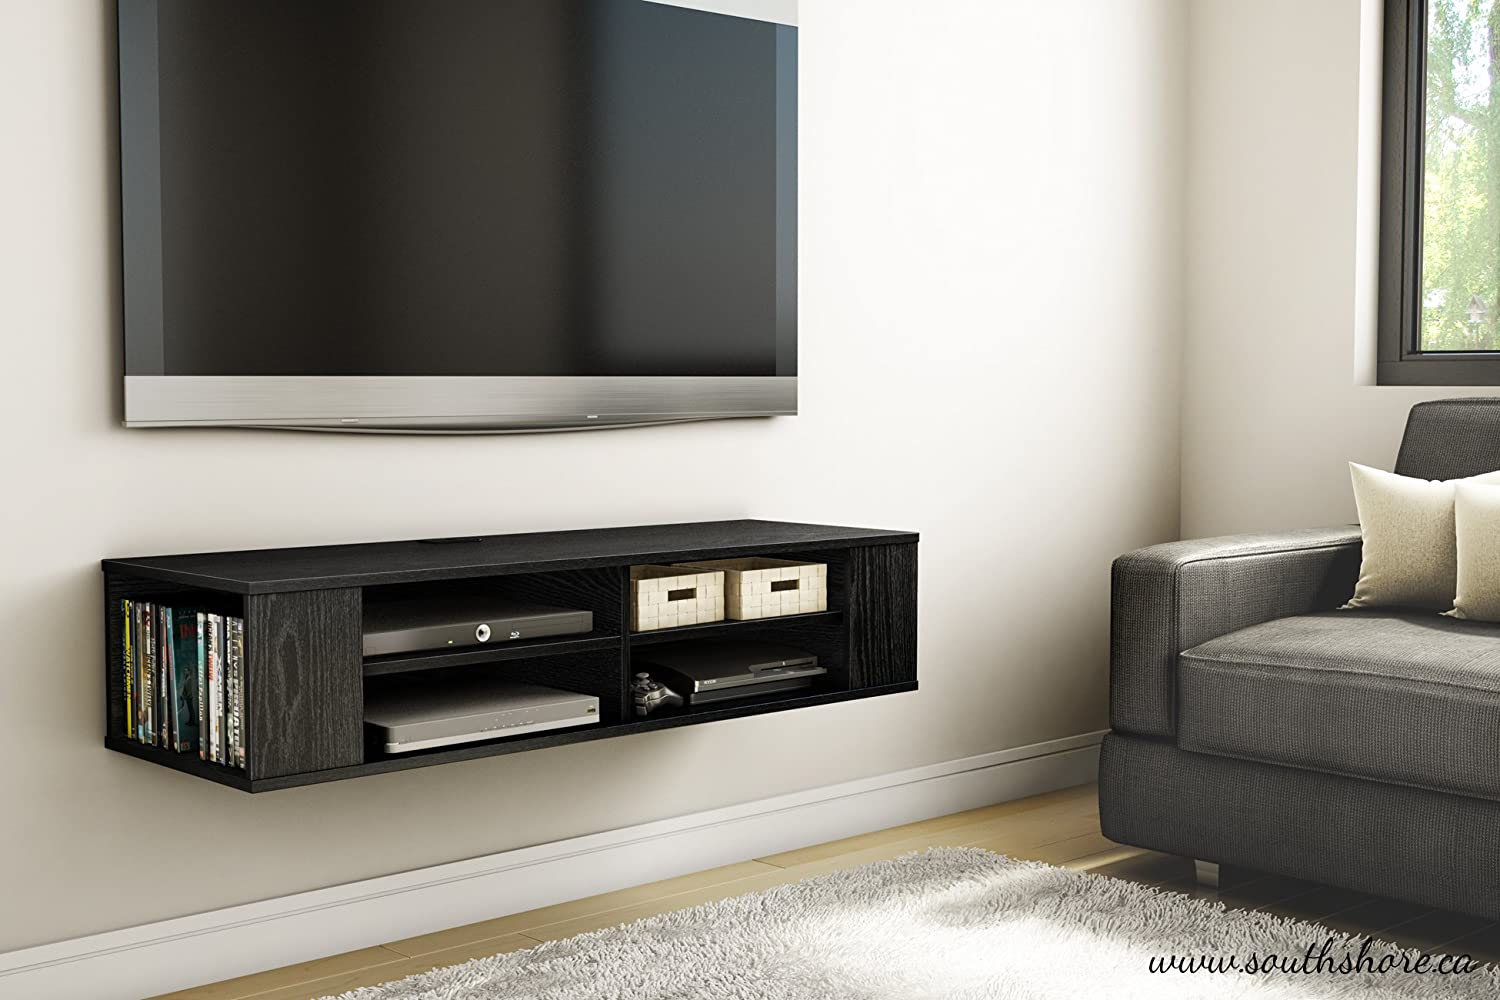 Wood Wall Behind Tv Details About Tv Floating Media Console Wood Wall Mounted Storage Cabinet Stand Modern Ps4 Ps3